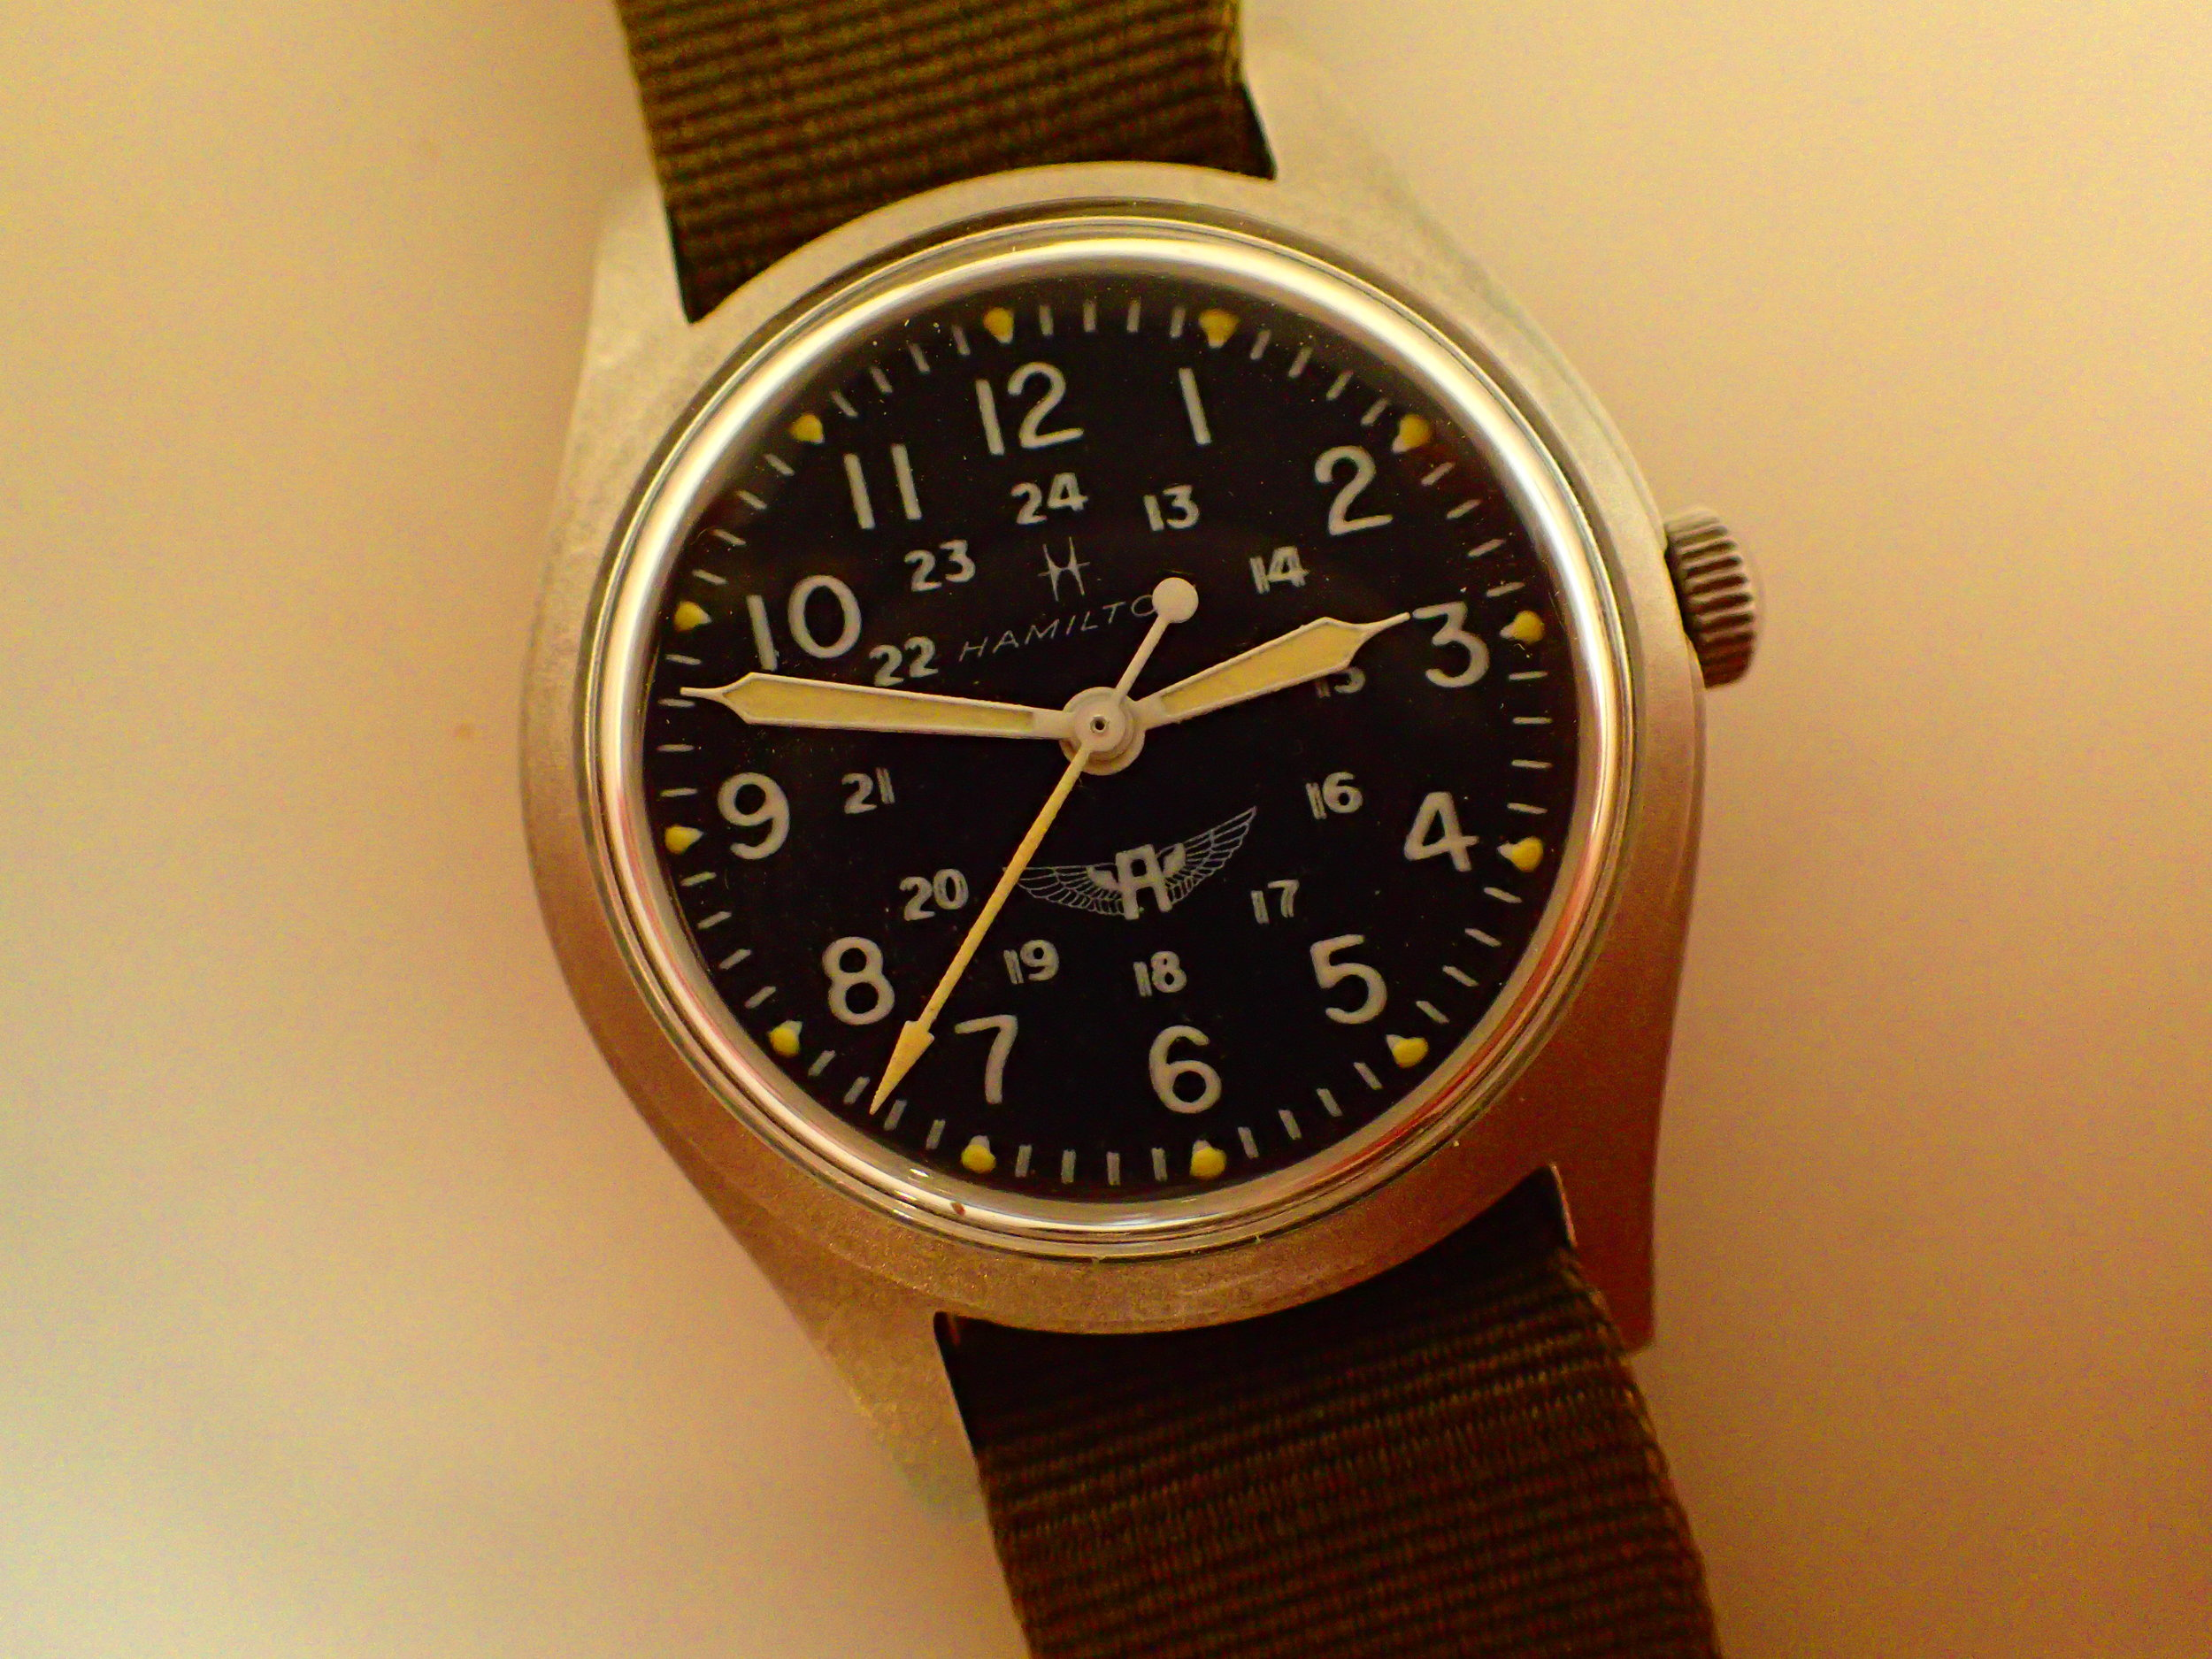 The Avirex-branded Hamilton 9219. The winged A logo is a favorite of mine.